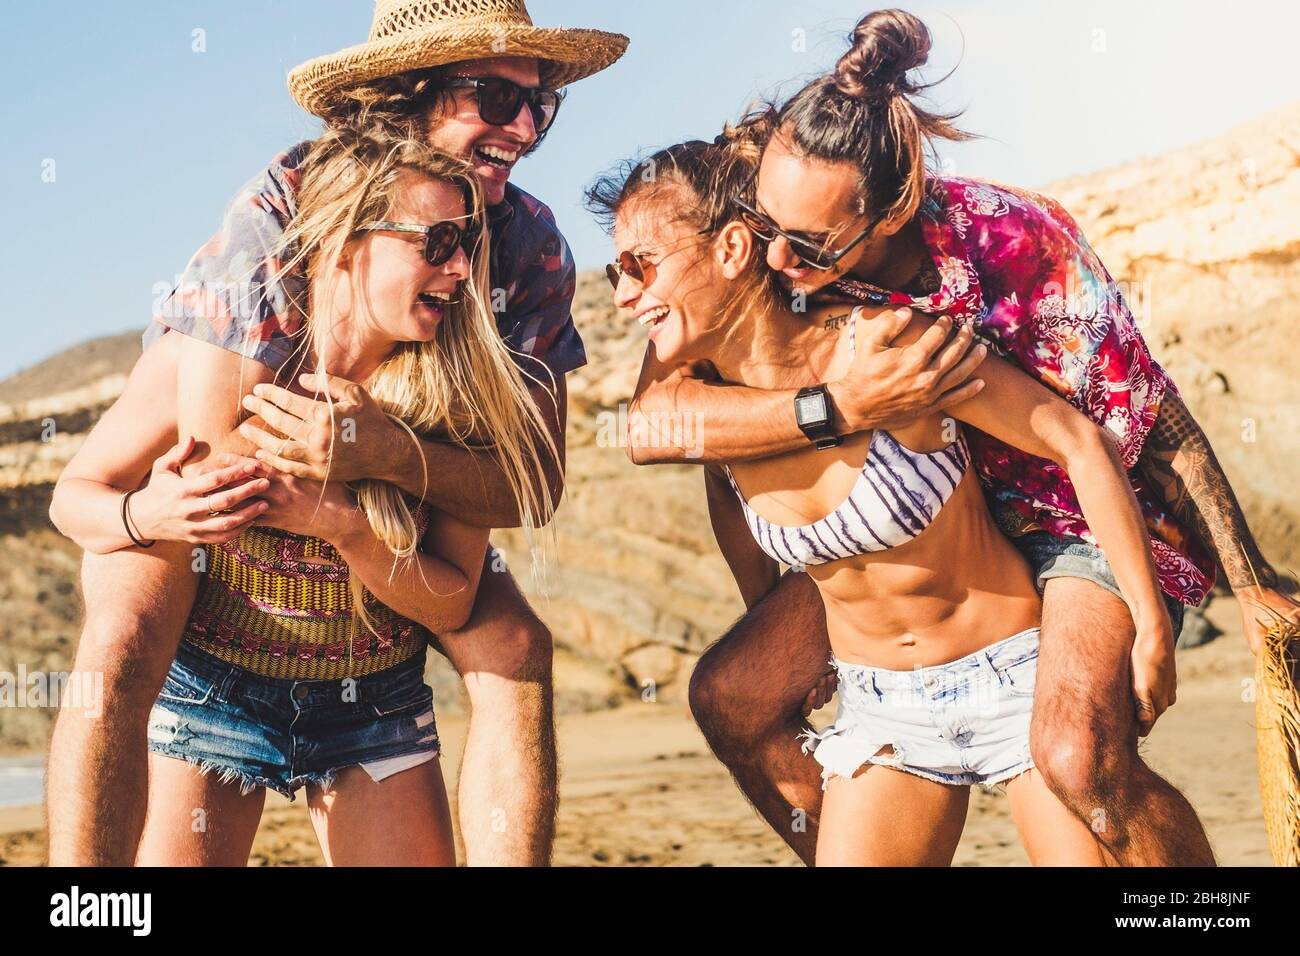 Cheerful happy group of people friends laugh a lot outdoor at the beach - summer travel vacation concept with women carrying men - sun and funny lifestyle for alternative millennial - beautiful resort place Stock Photo